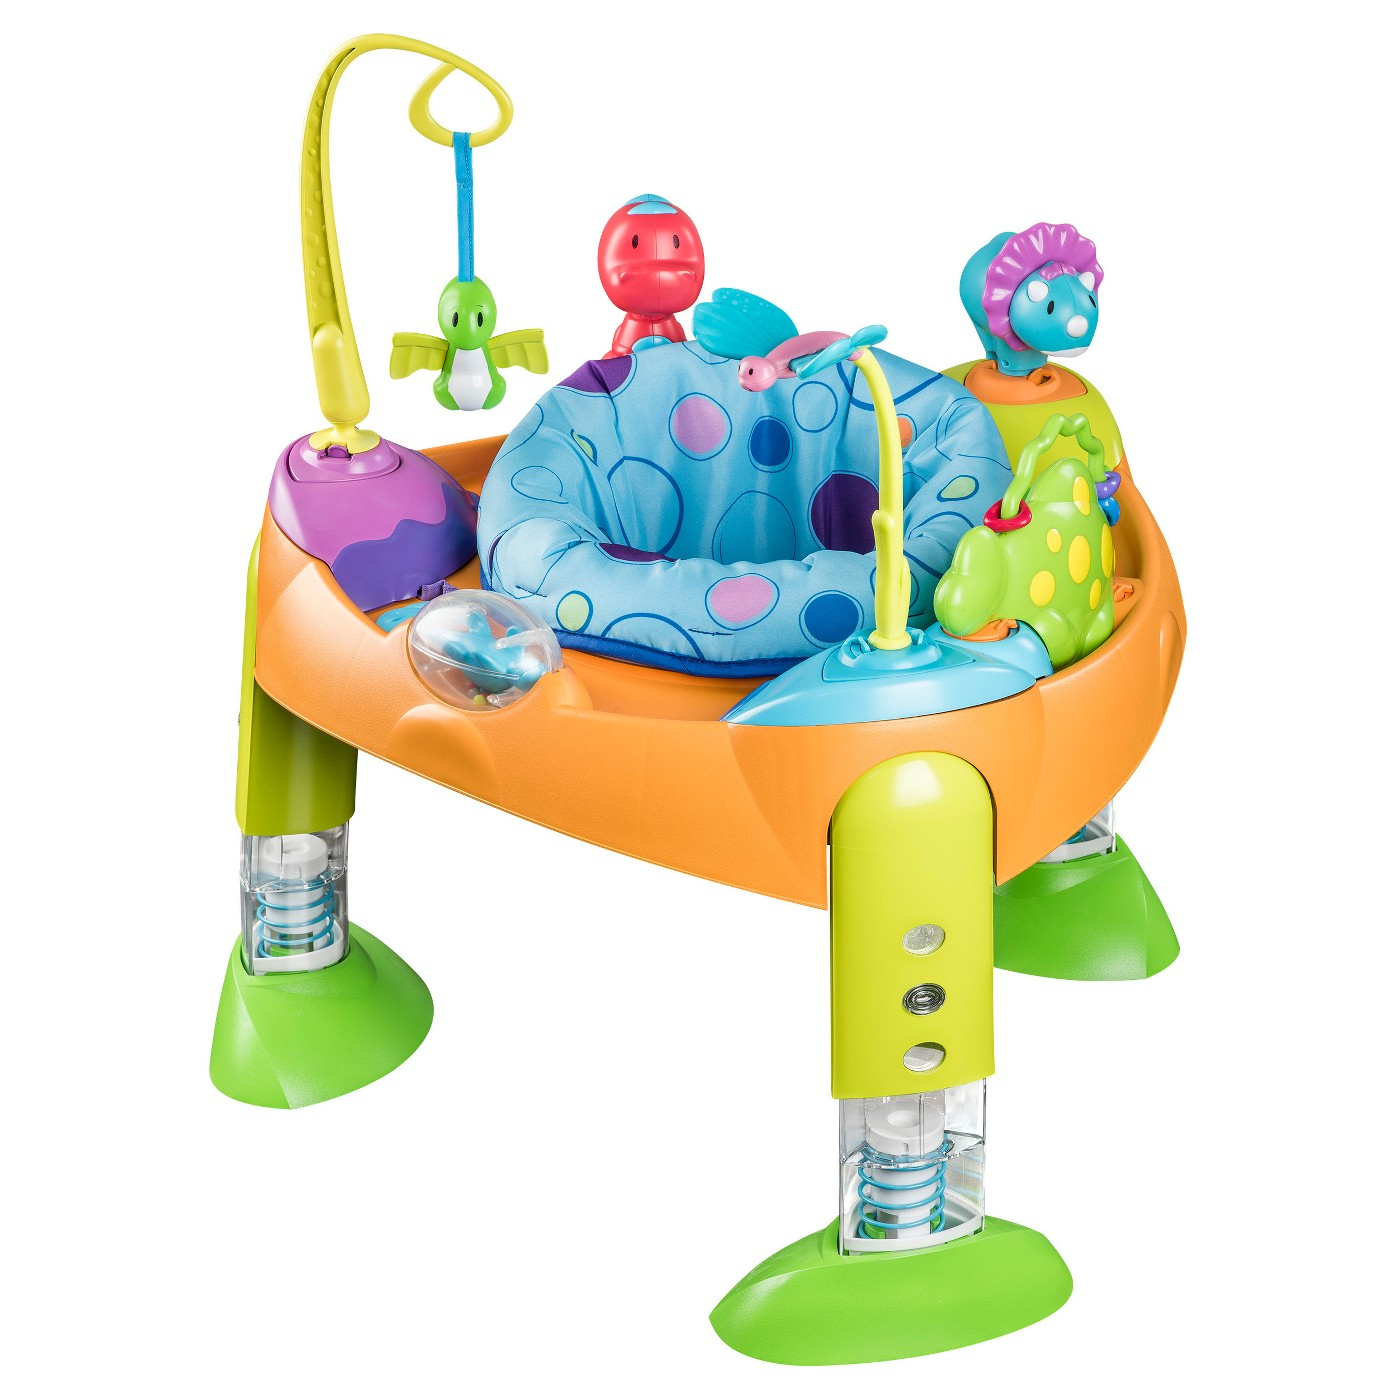 Evenflo® ExerSaucer Fast Fold & Go - Bouce-a-Saurus - image 1 of 4